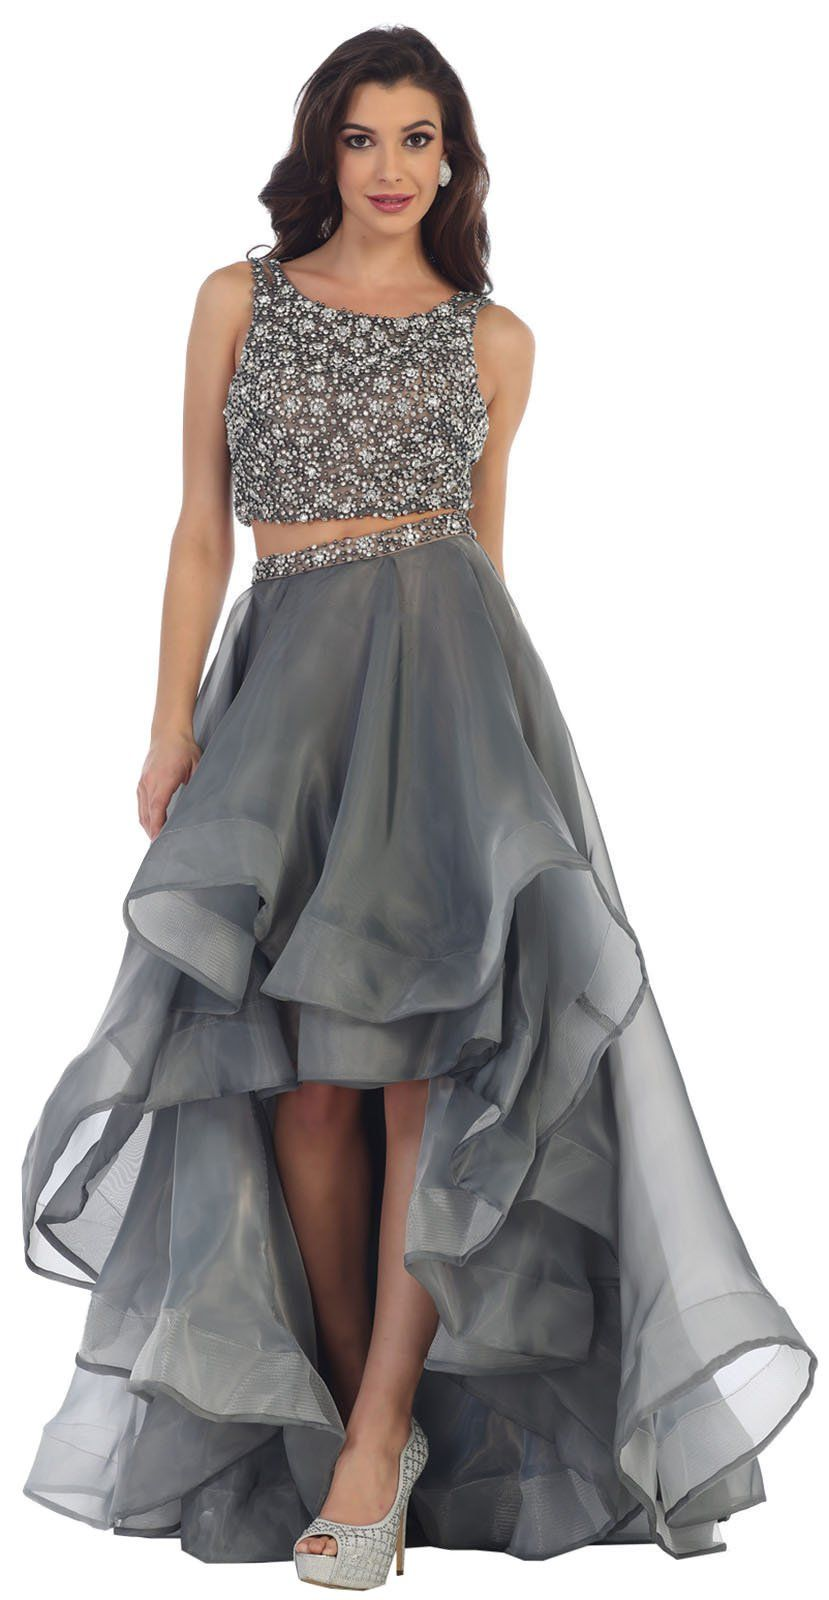 ffb590b5a3a Royal Queen RQ7486 Two Piece Semi Formal Dance Dress 6 Charcoal Nude    To  view further for this item